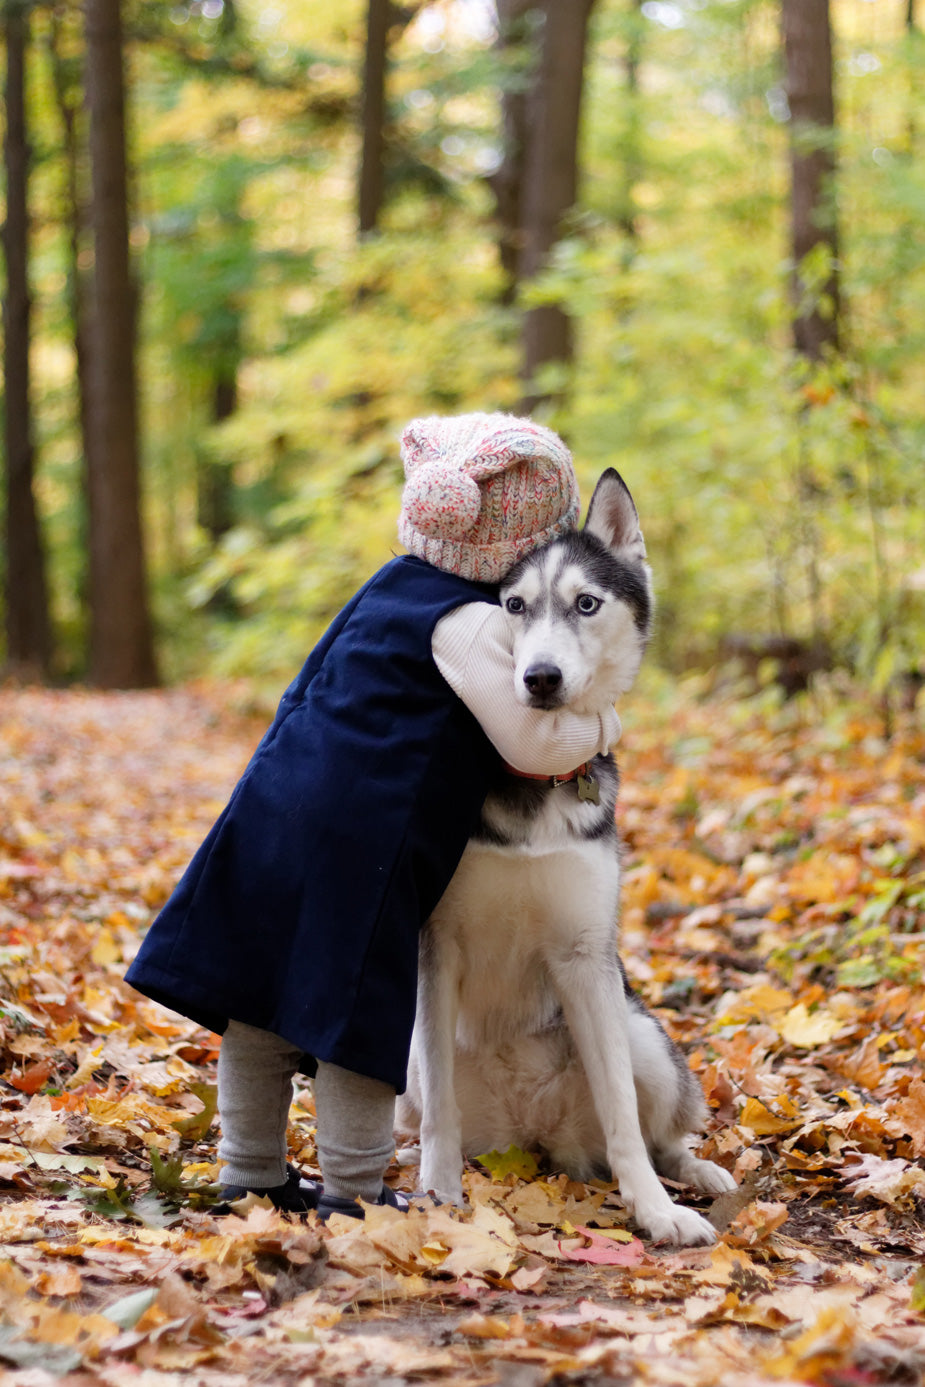 Cute Dog Photo Of The Day: Girl Hugs Dog